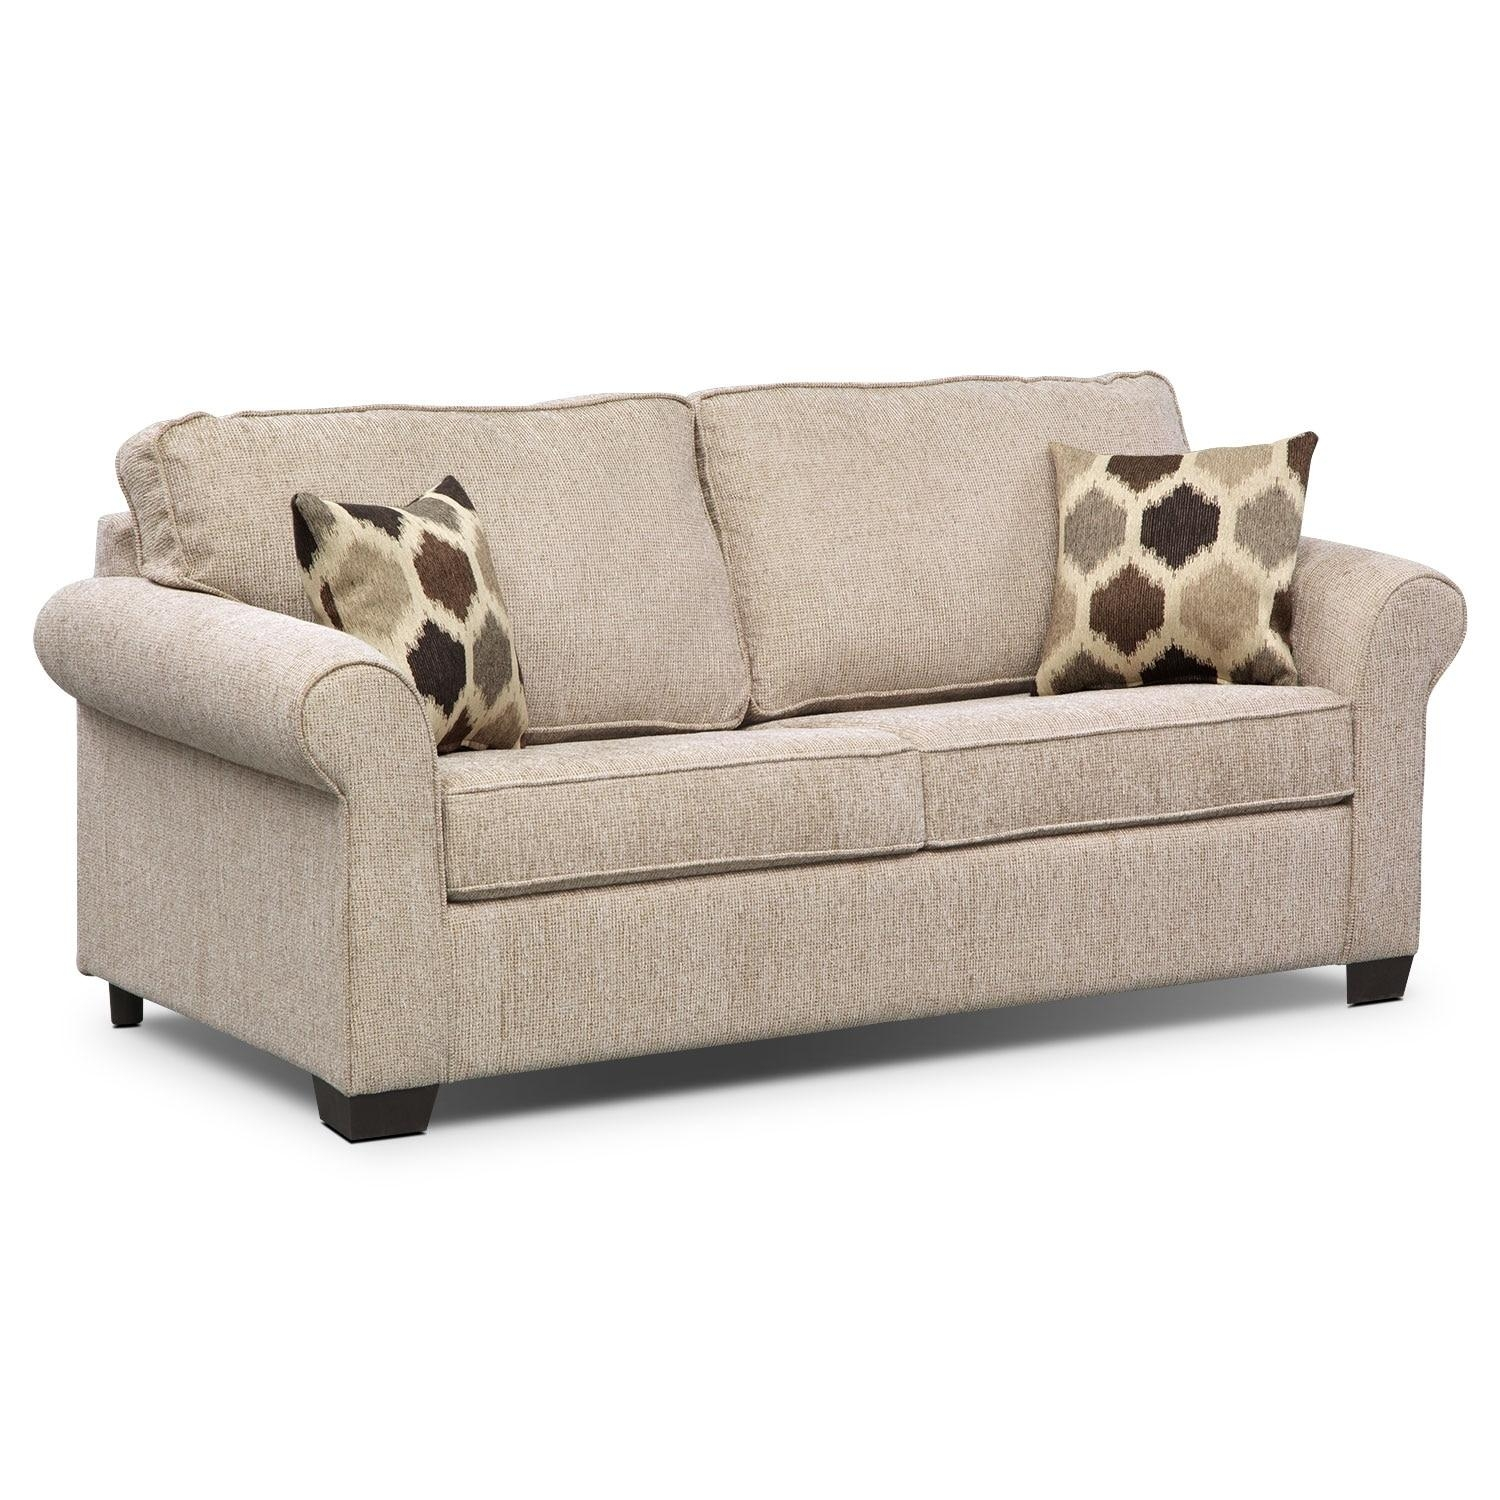 Foam Sleeper Sofa Bed | Centerfieldbar With Regard To American Sofa Beds (Image 13 of 22)